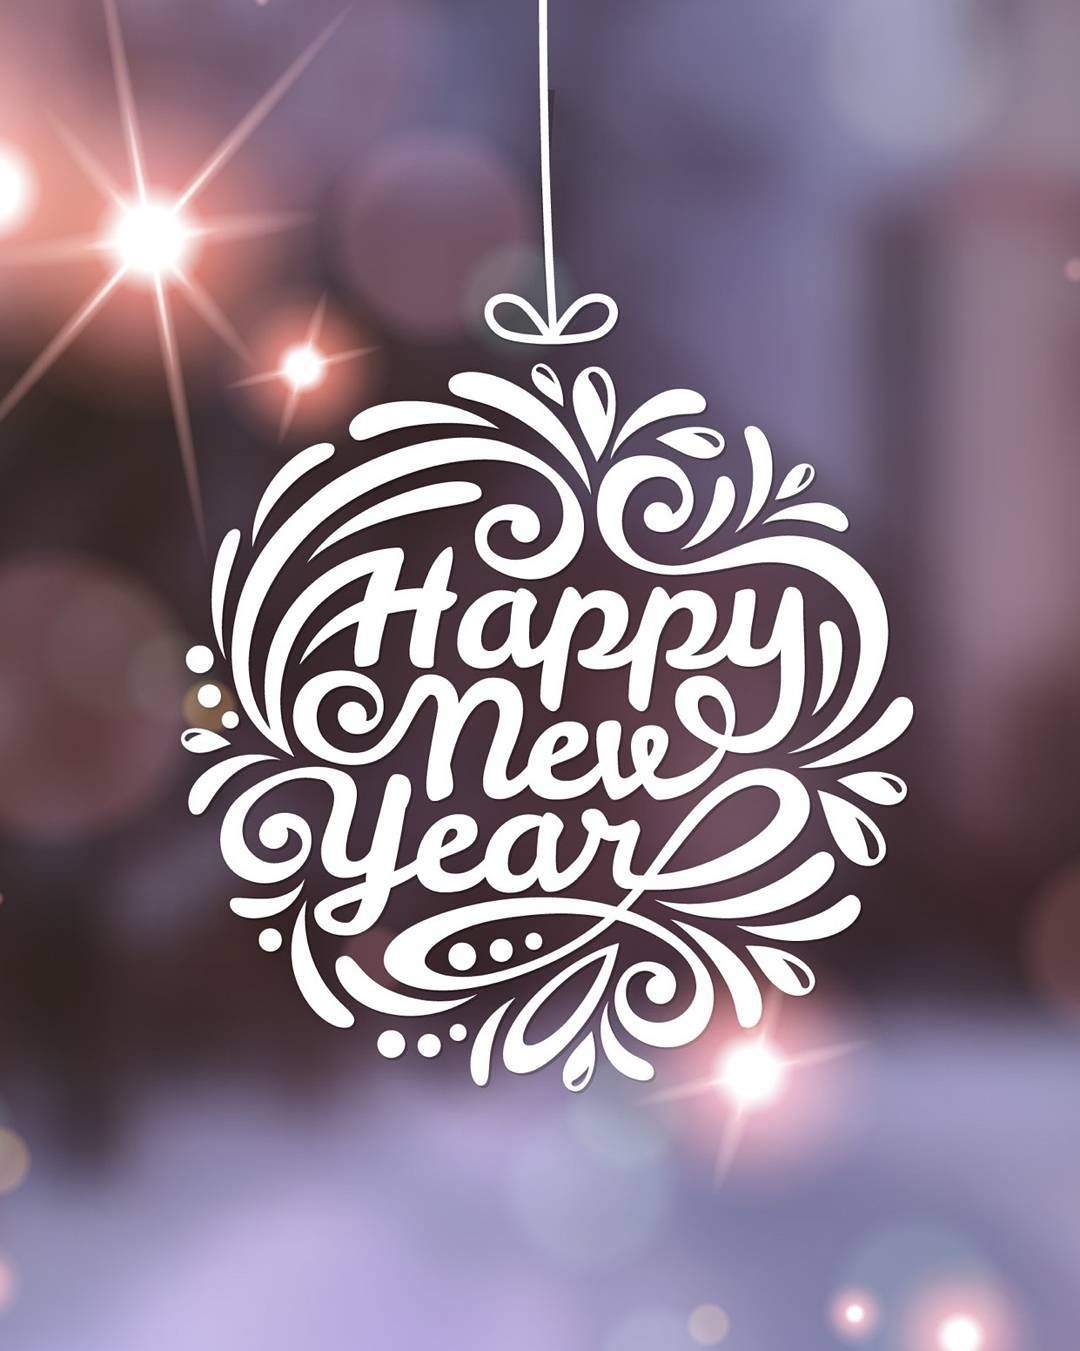 Wish everyone a very happy new year happy new year